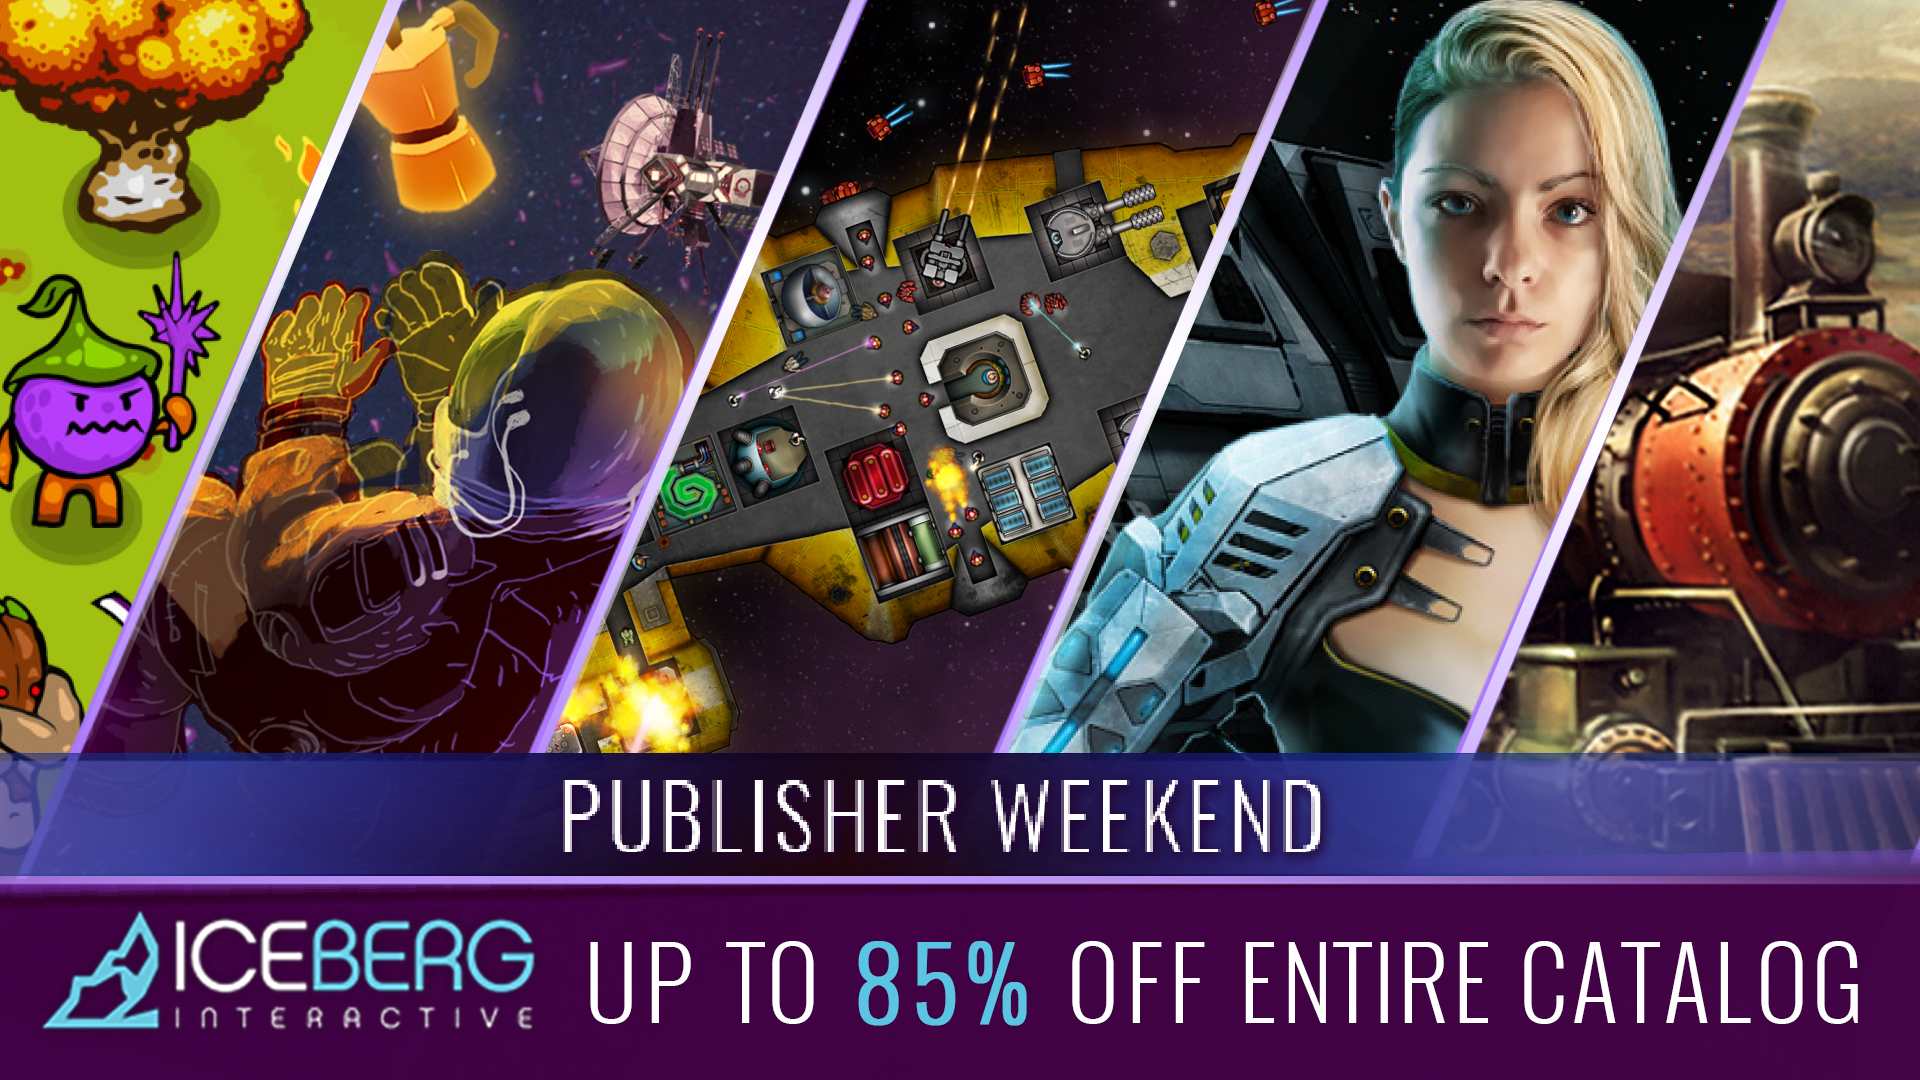 PC Games: [STEAM] Weekend Deal: Iceberg Publisher Sale: Circle Empires (40% off), Tech Support: Error Unknown (50% off), Pax Nova (33% off), Conarium (75% off), Nuclear Dawn (85% off), Into the Stars (80% off), Oriental Empires (75% off) and more